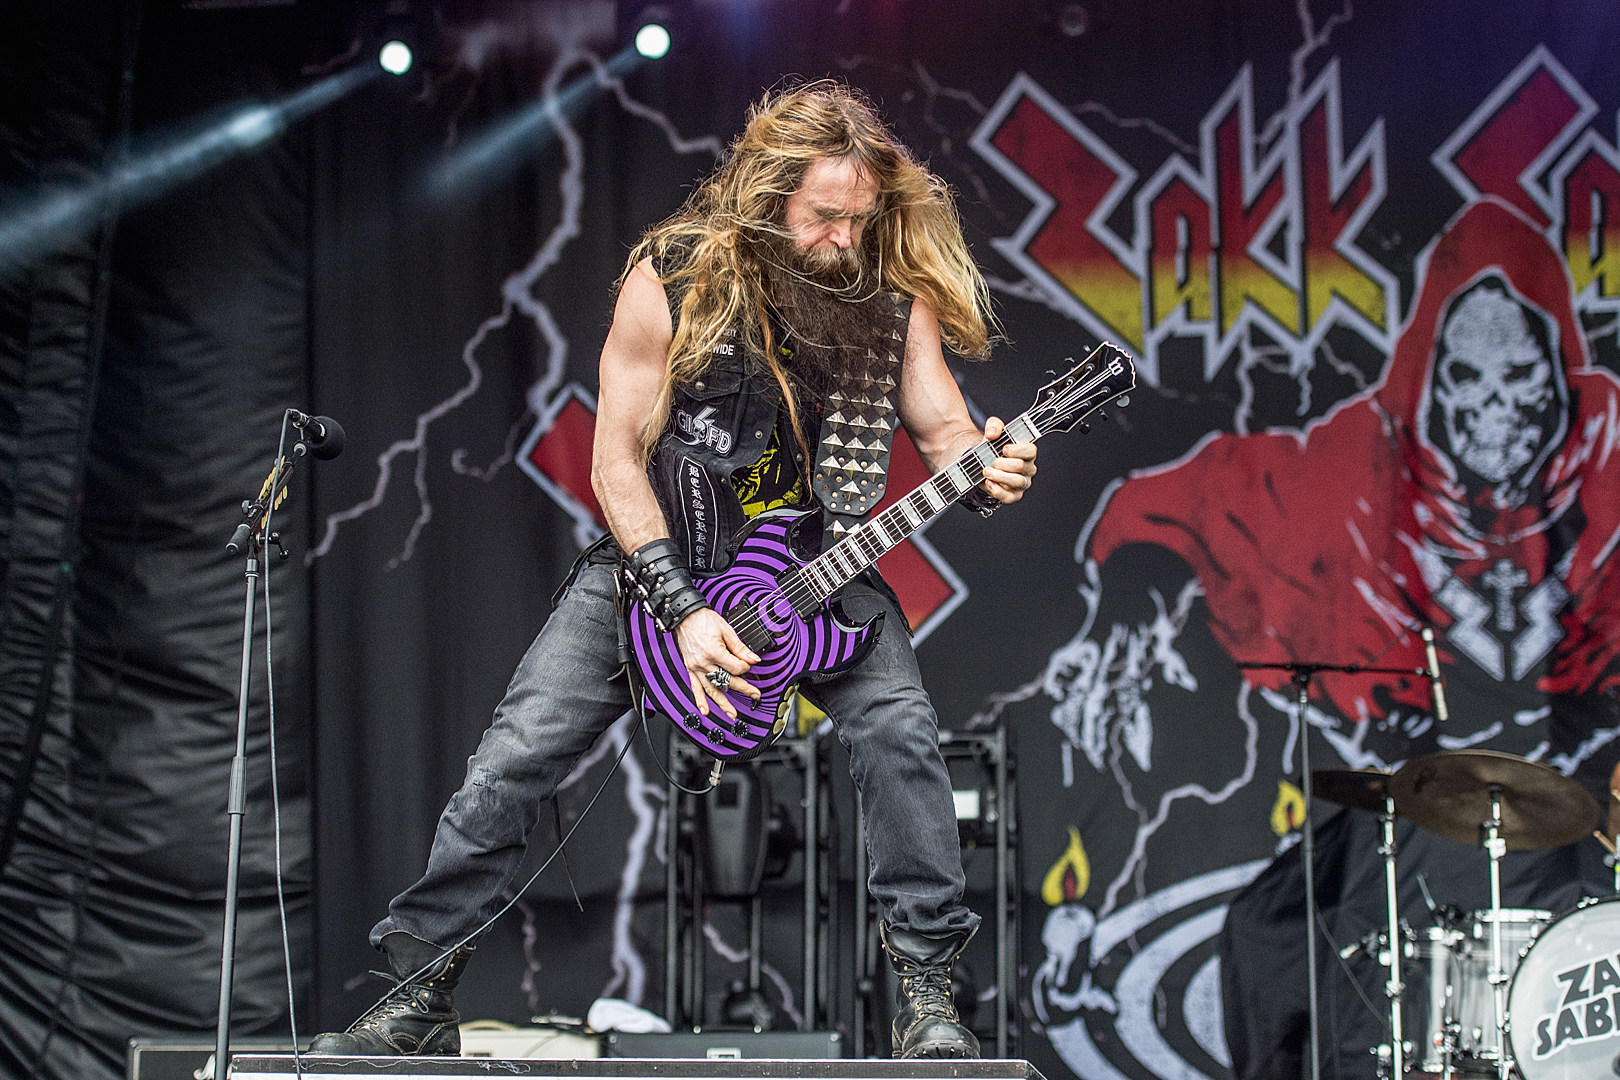 Zakk Sabbath to Re-Record Black Sabbath's Debut Album in 24 Hours